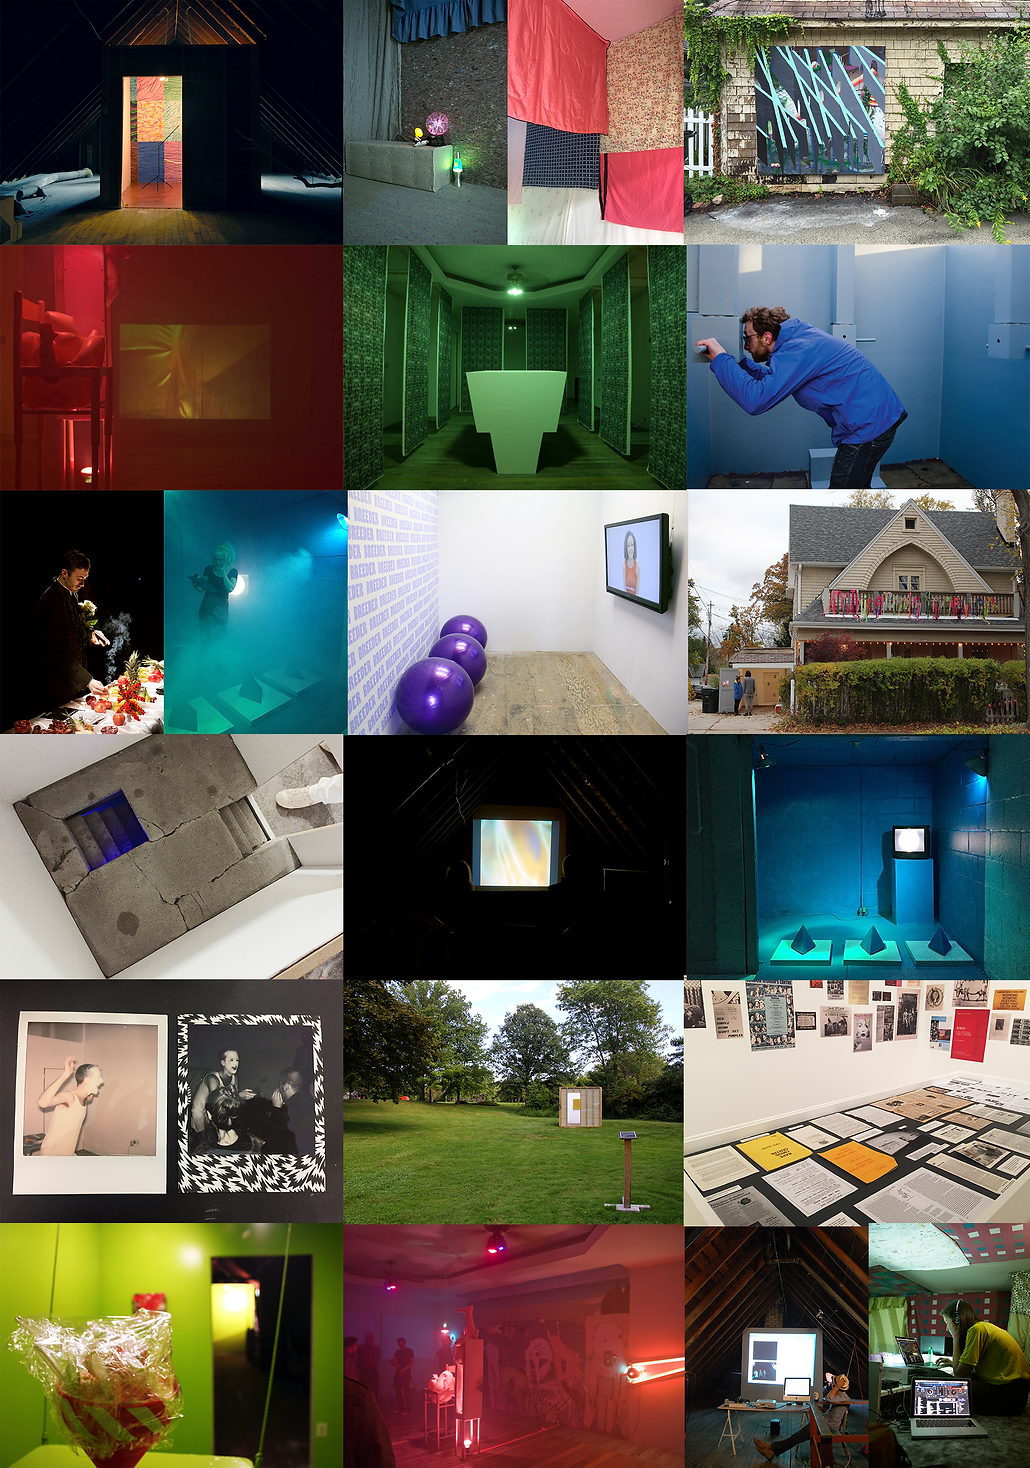 past curated exhibtions